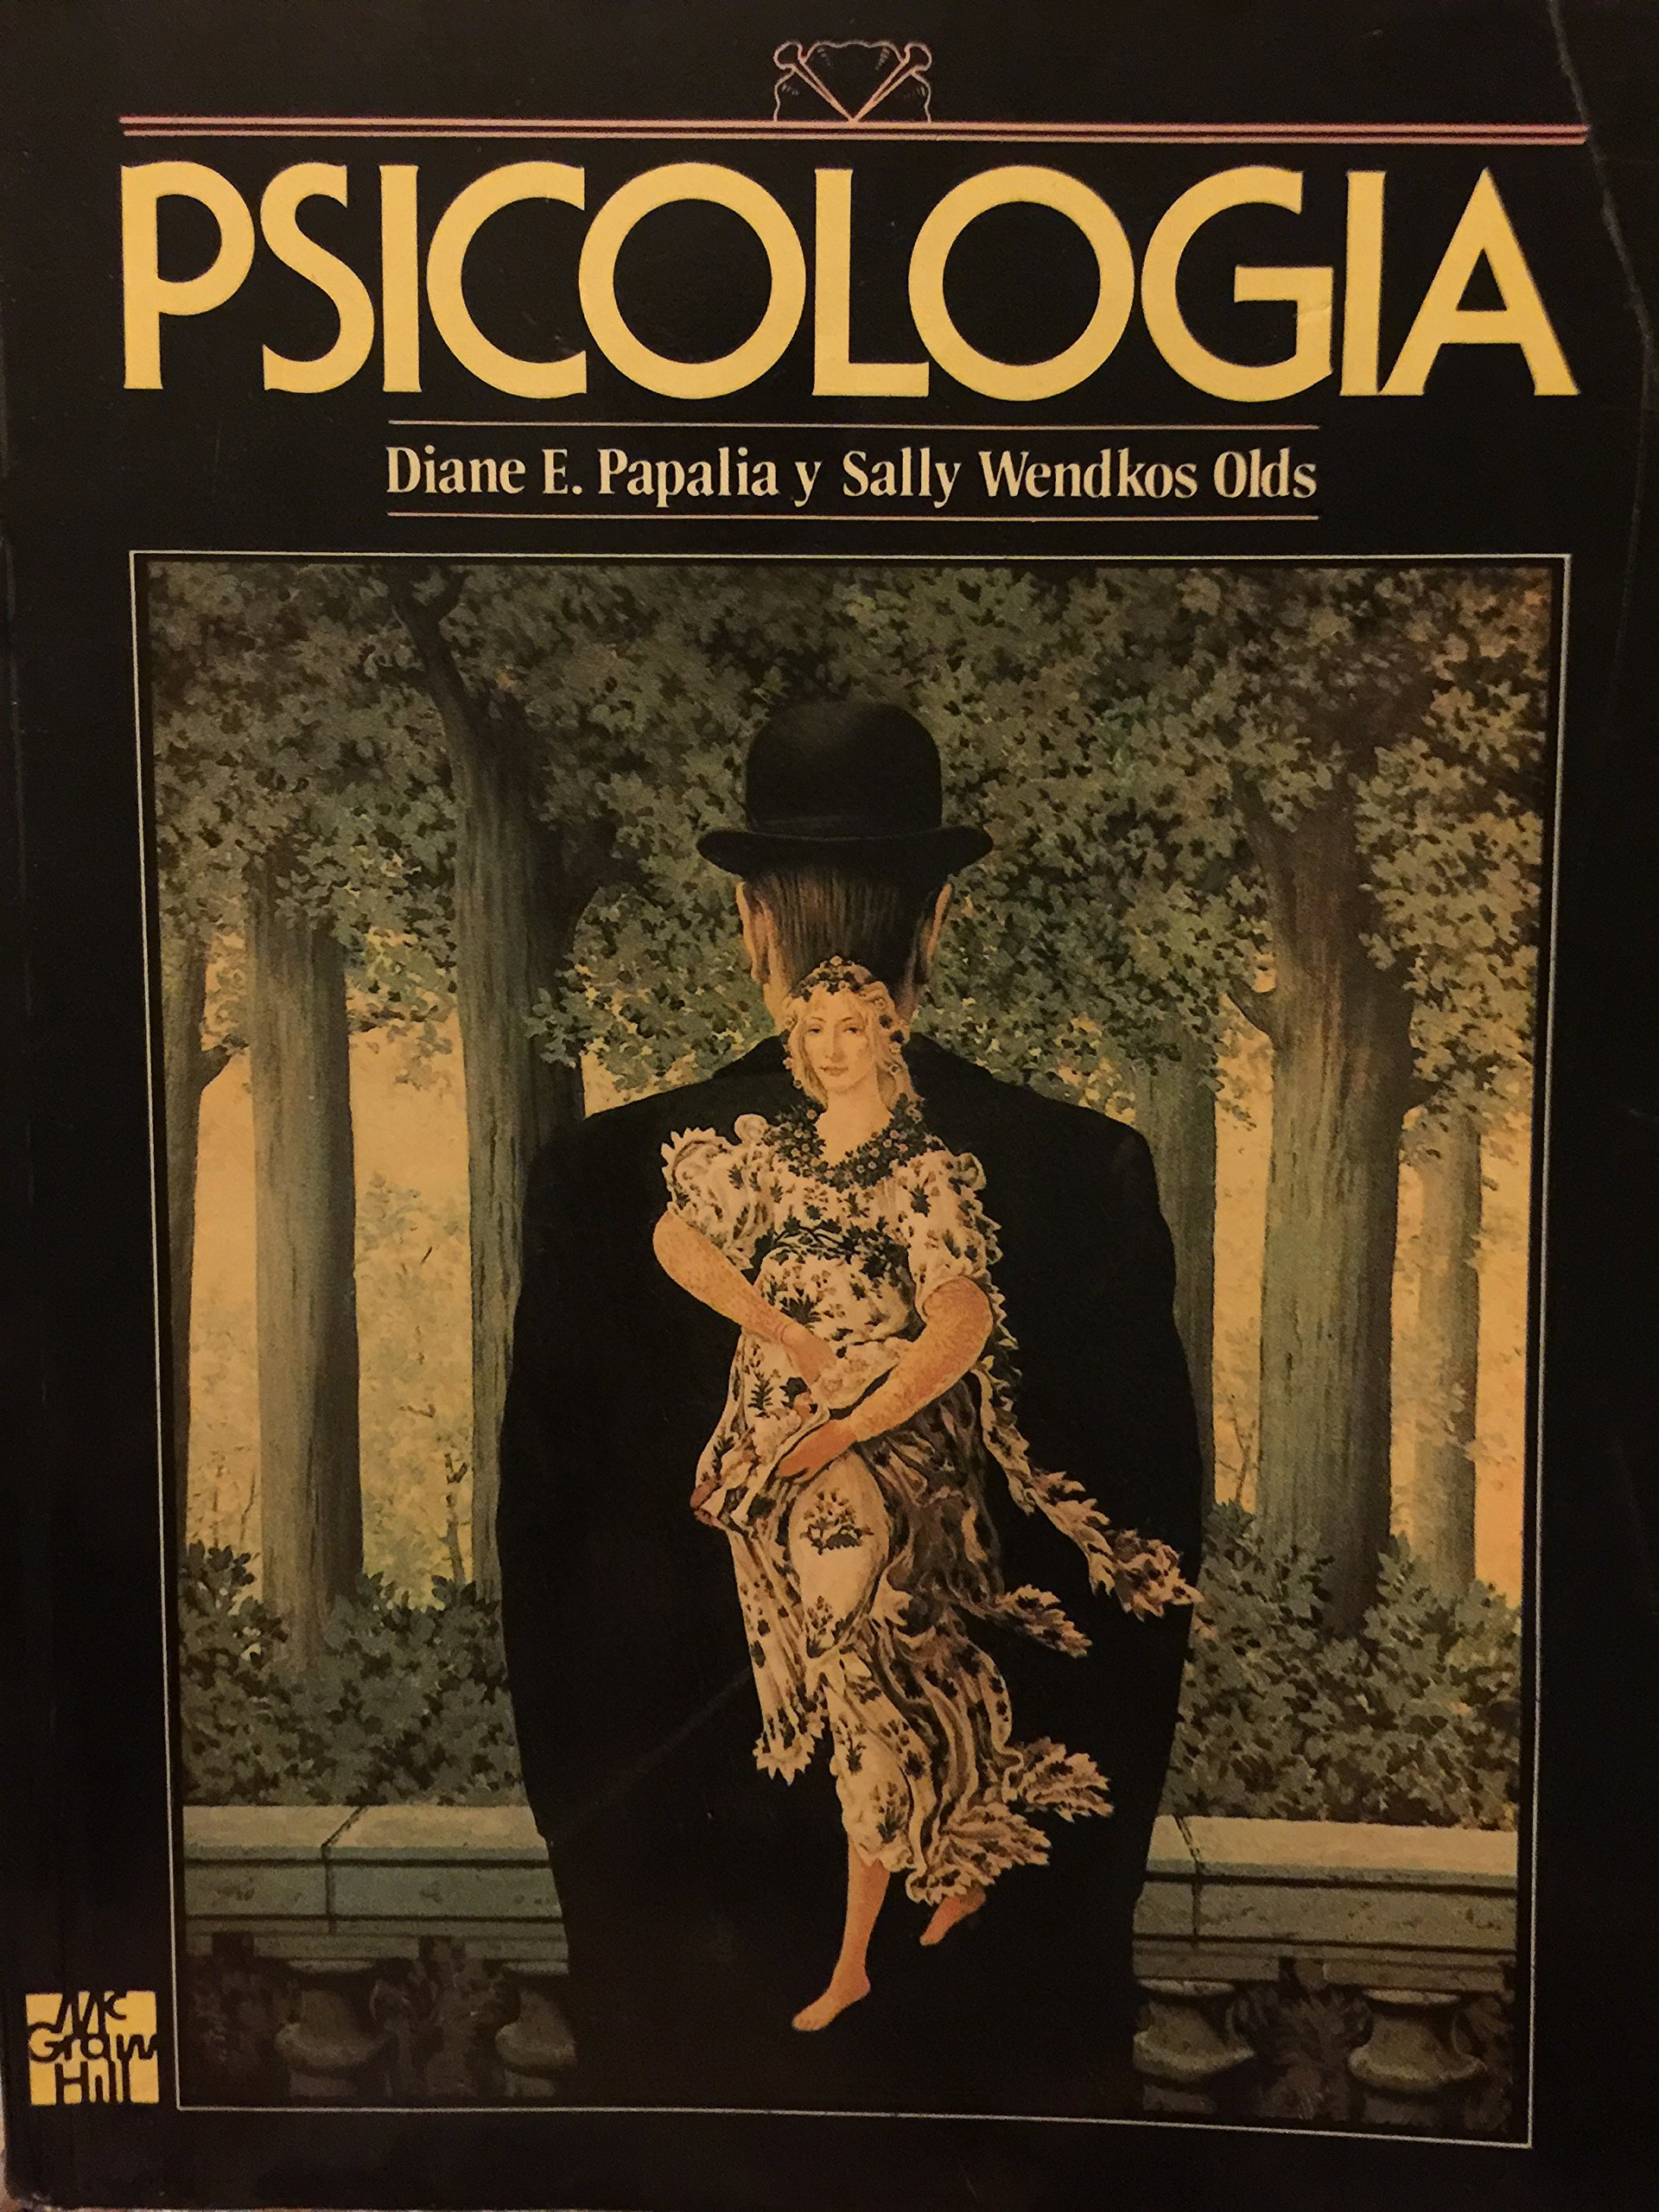 Psicologia amazon sally brookens olds diane e papalia psicologia amazon sally brookens olds diane e papalia 9789684221949 books fandeluxe Image collections